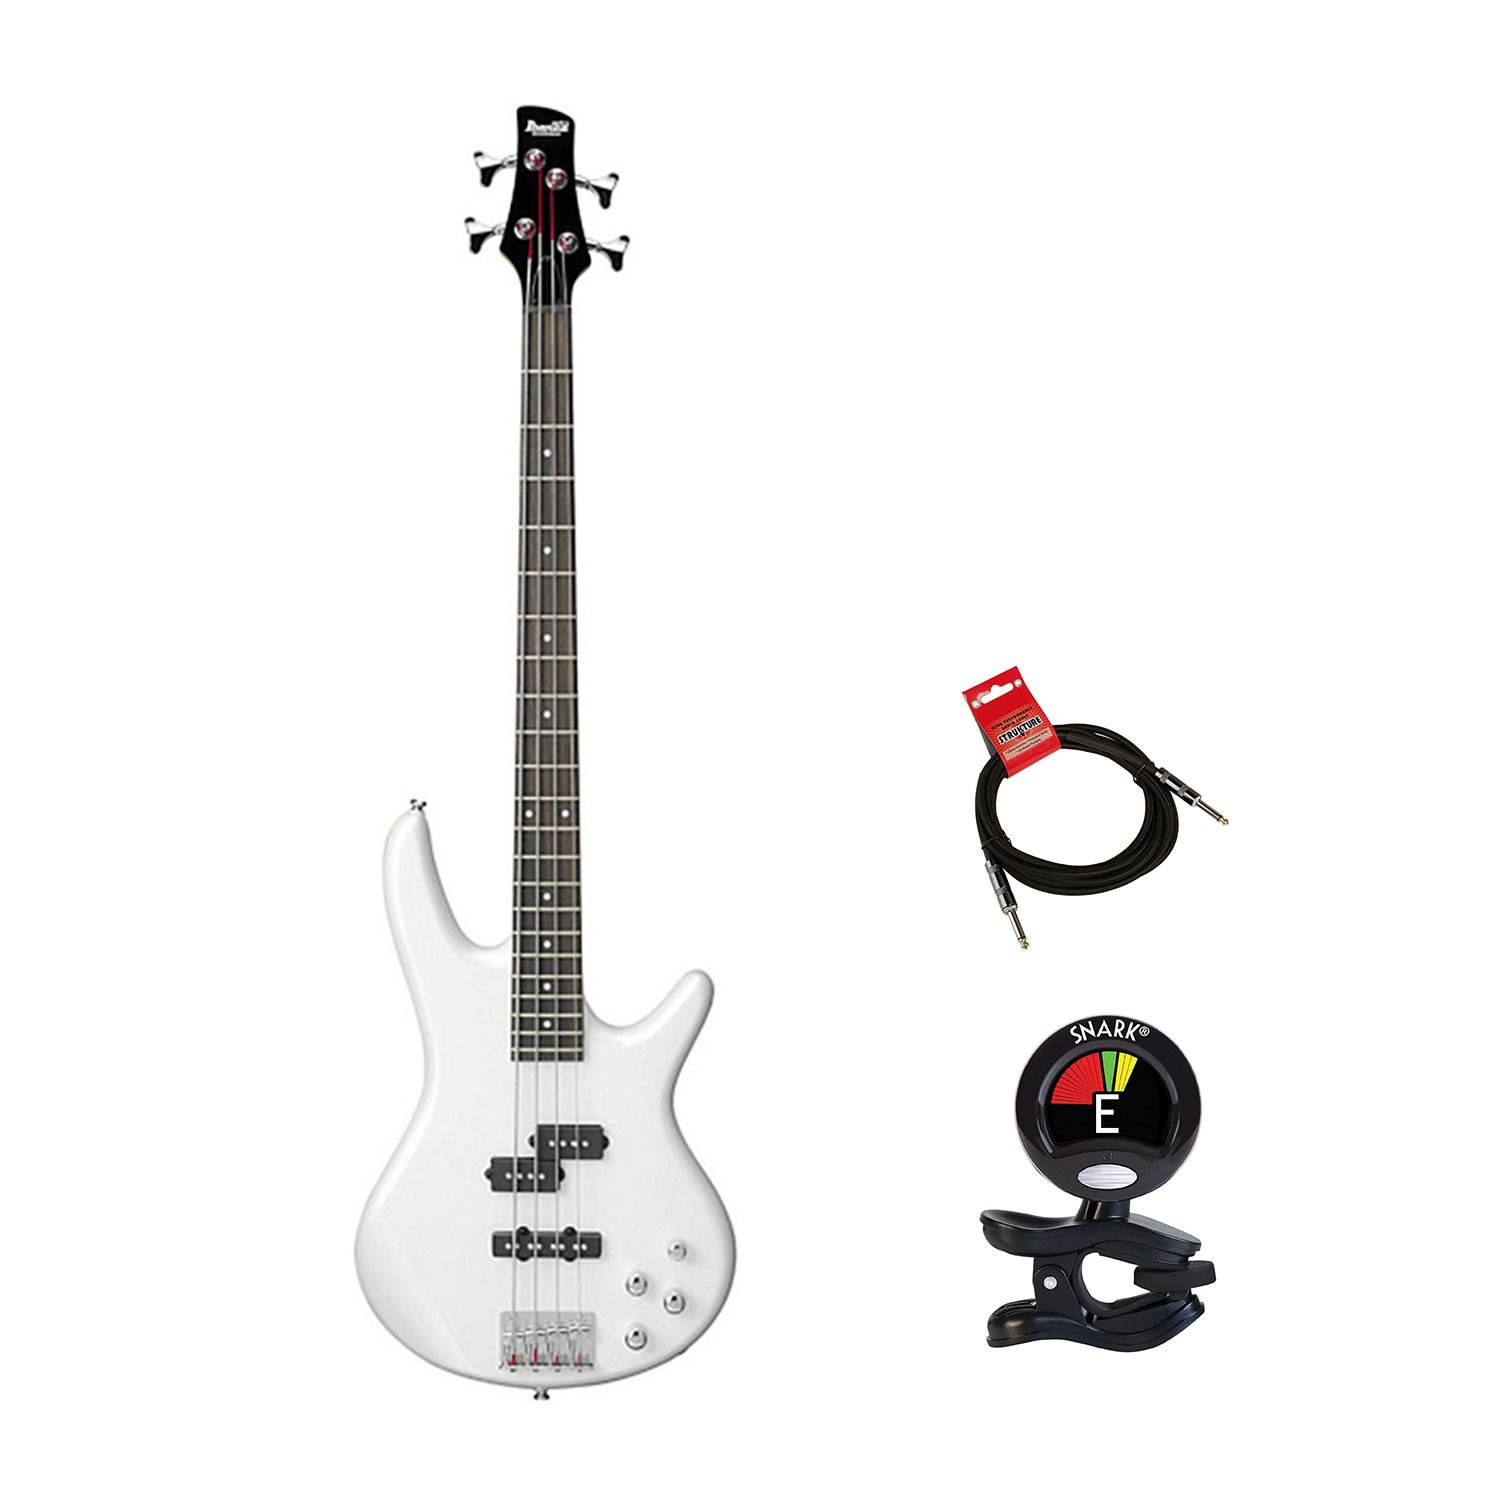 Ibanez GSR200PW GIO 4 String Electric Bass Guitar in Pearl White Finish With Clip On Guitar Tuner and Guitars Cable